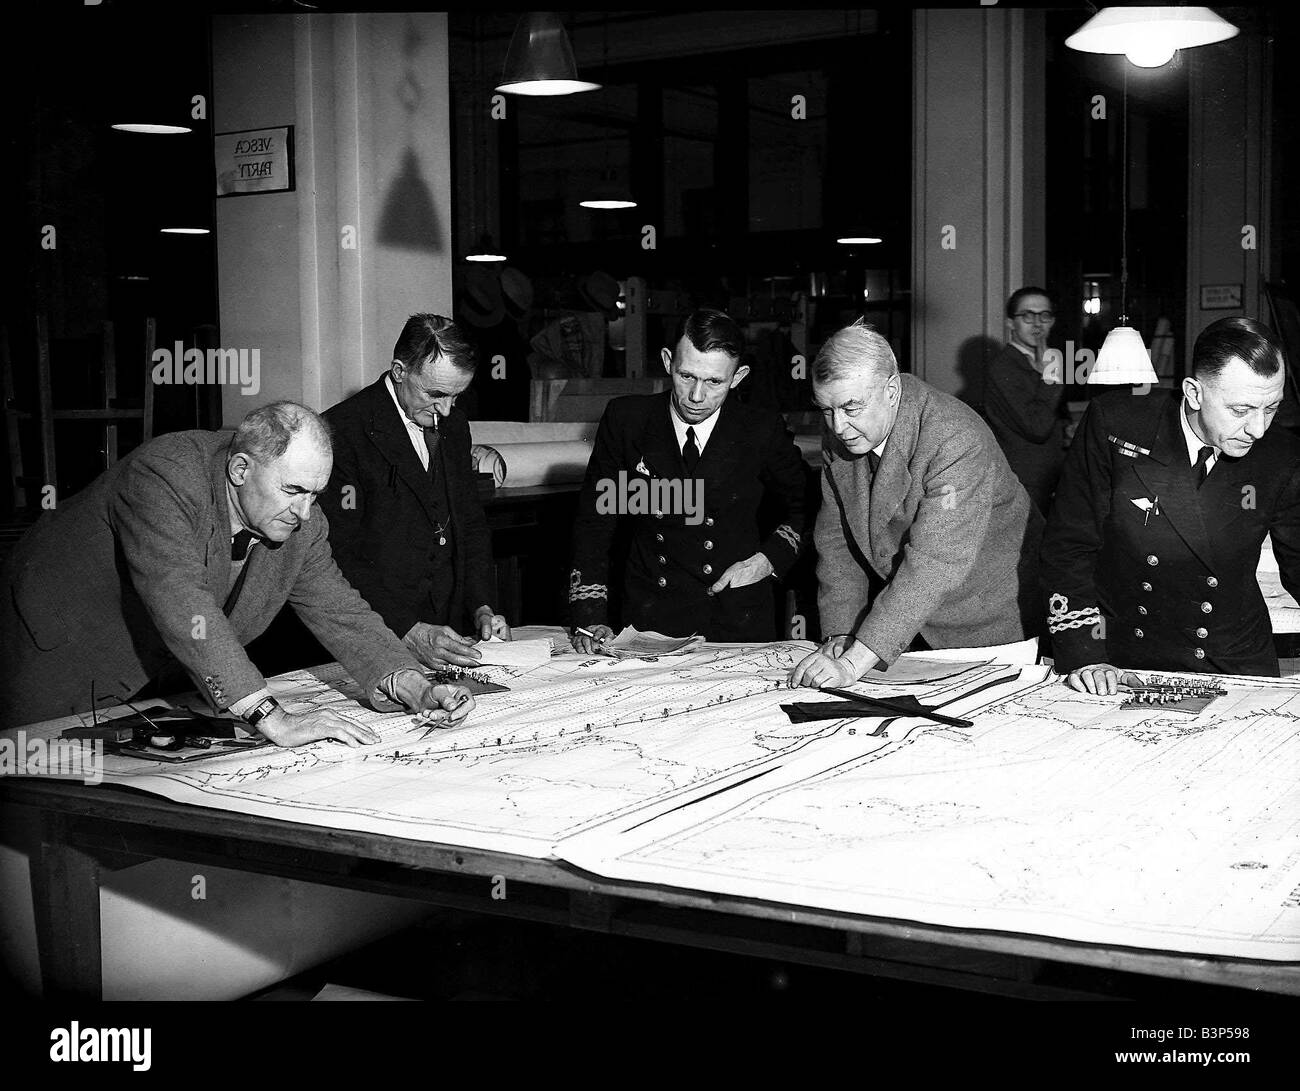 Admiralty plotting room in use during WW2 - Stock Image